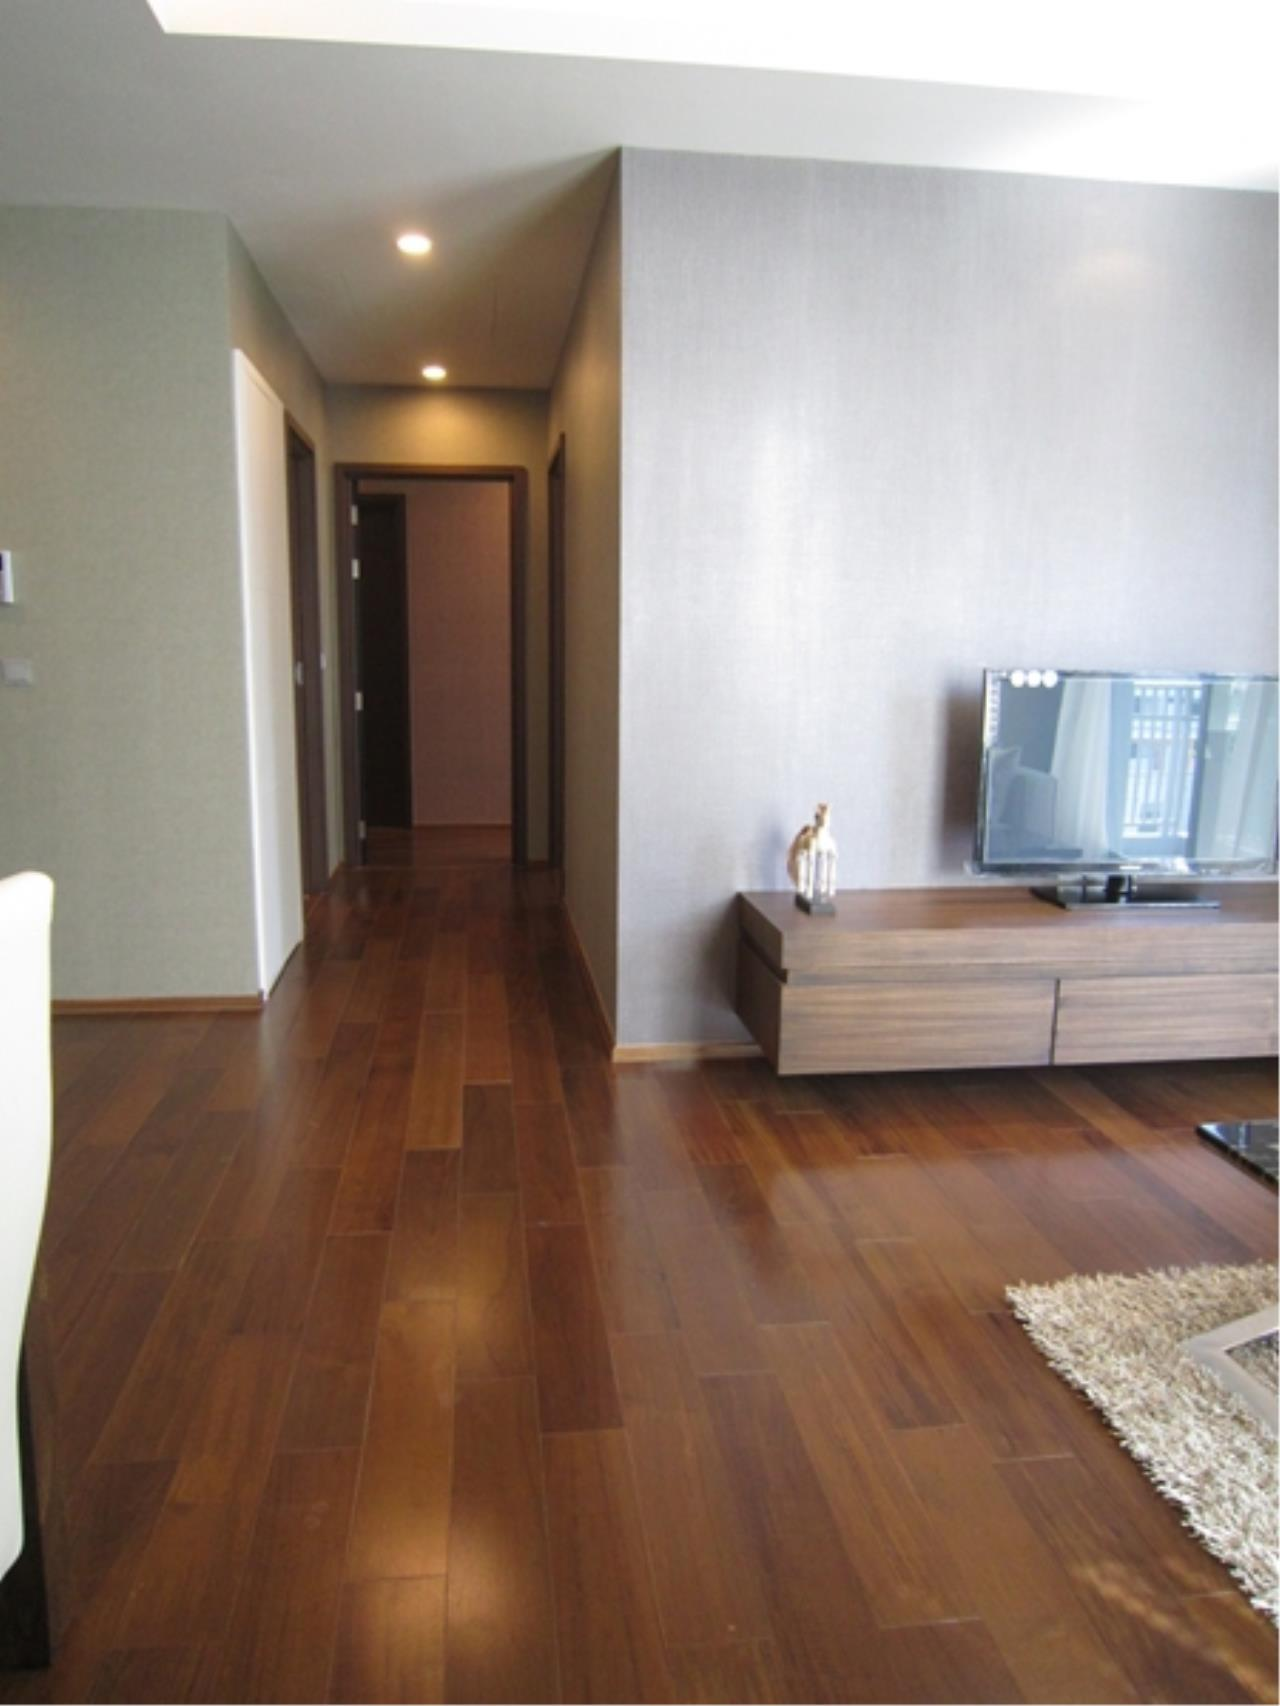 Right Move Thailand Agency's CS1270 Quattro by Sansiri For Sale - 21,300,000 THB - 2 Bedrooms - 92 Sqm  6